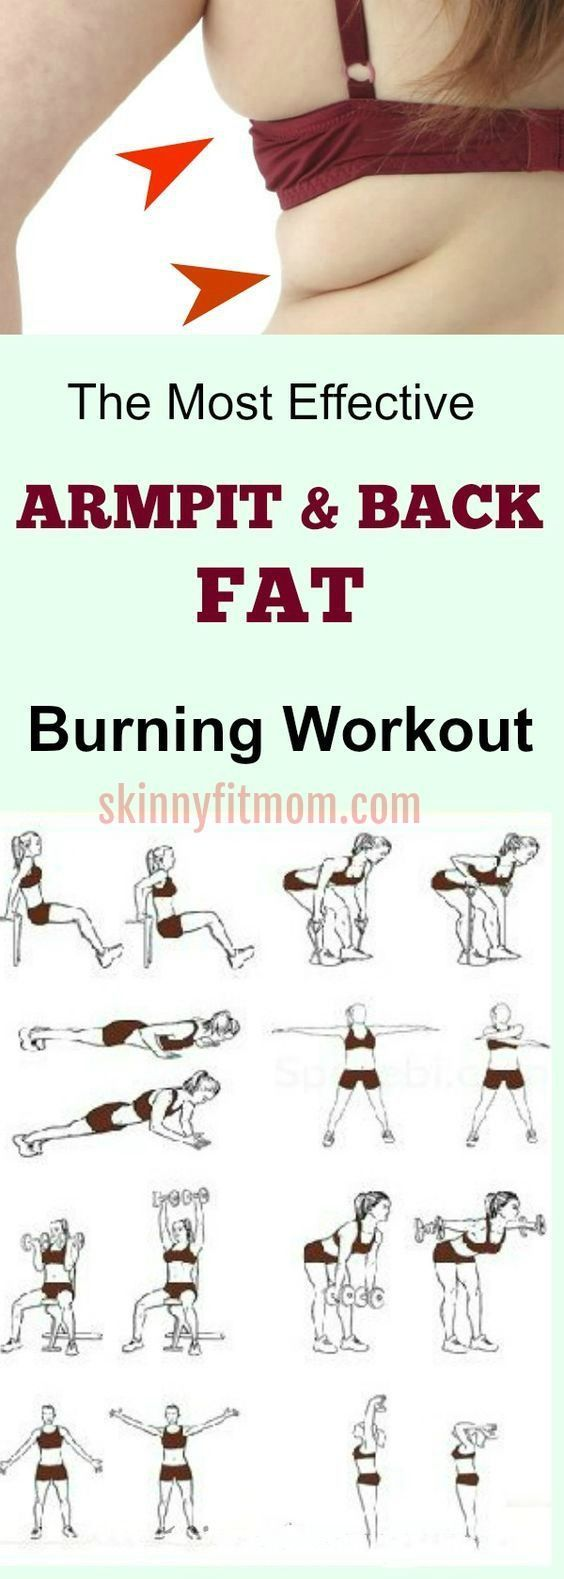 7 Best Exercises To Lose Arm And Back Fat